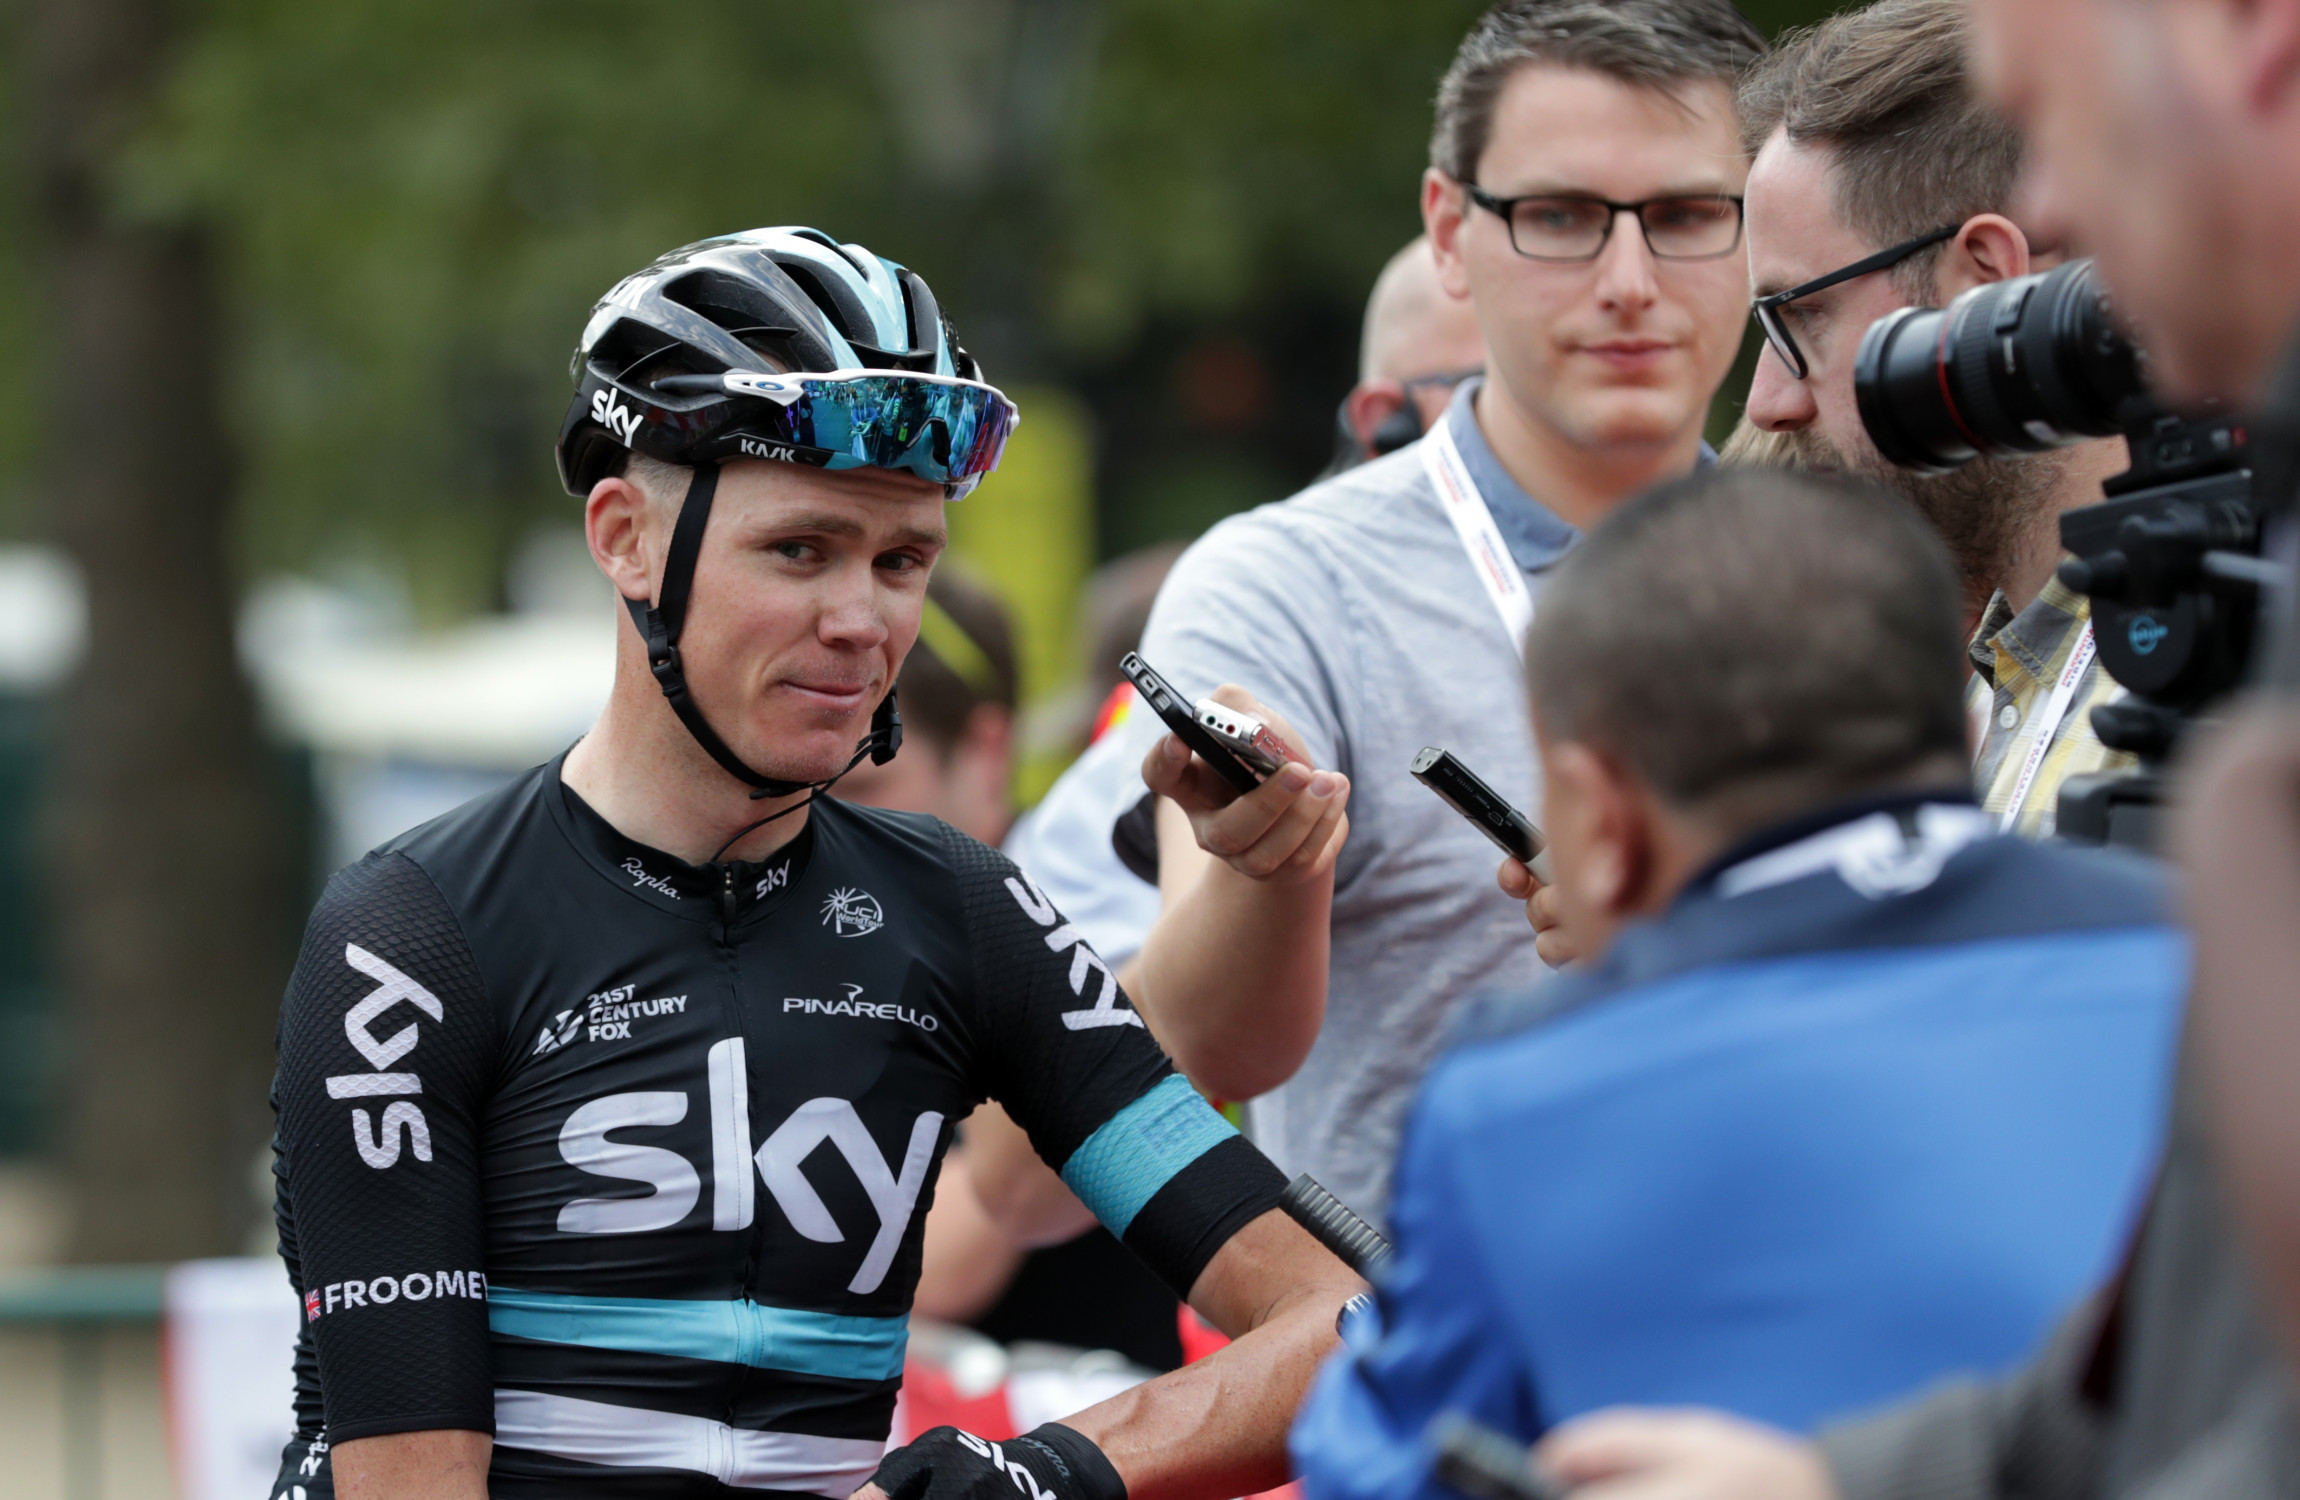 Froome denies suggestion he could accept six-month ban